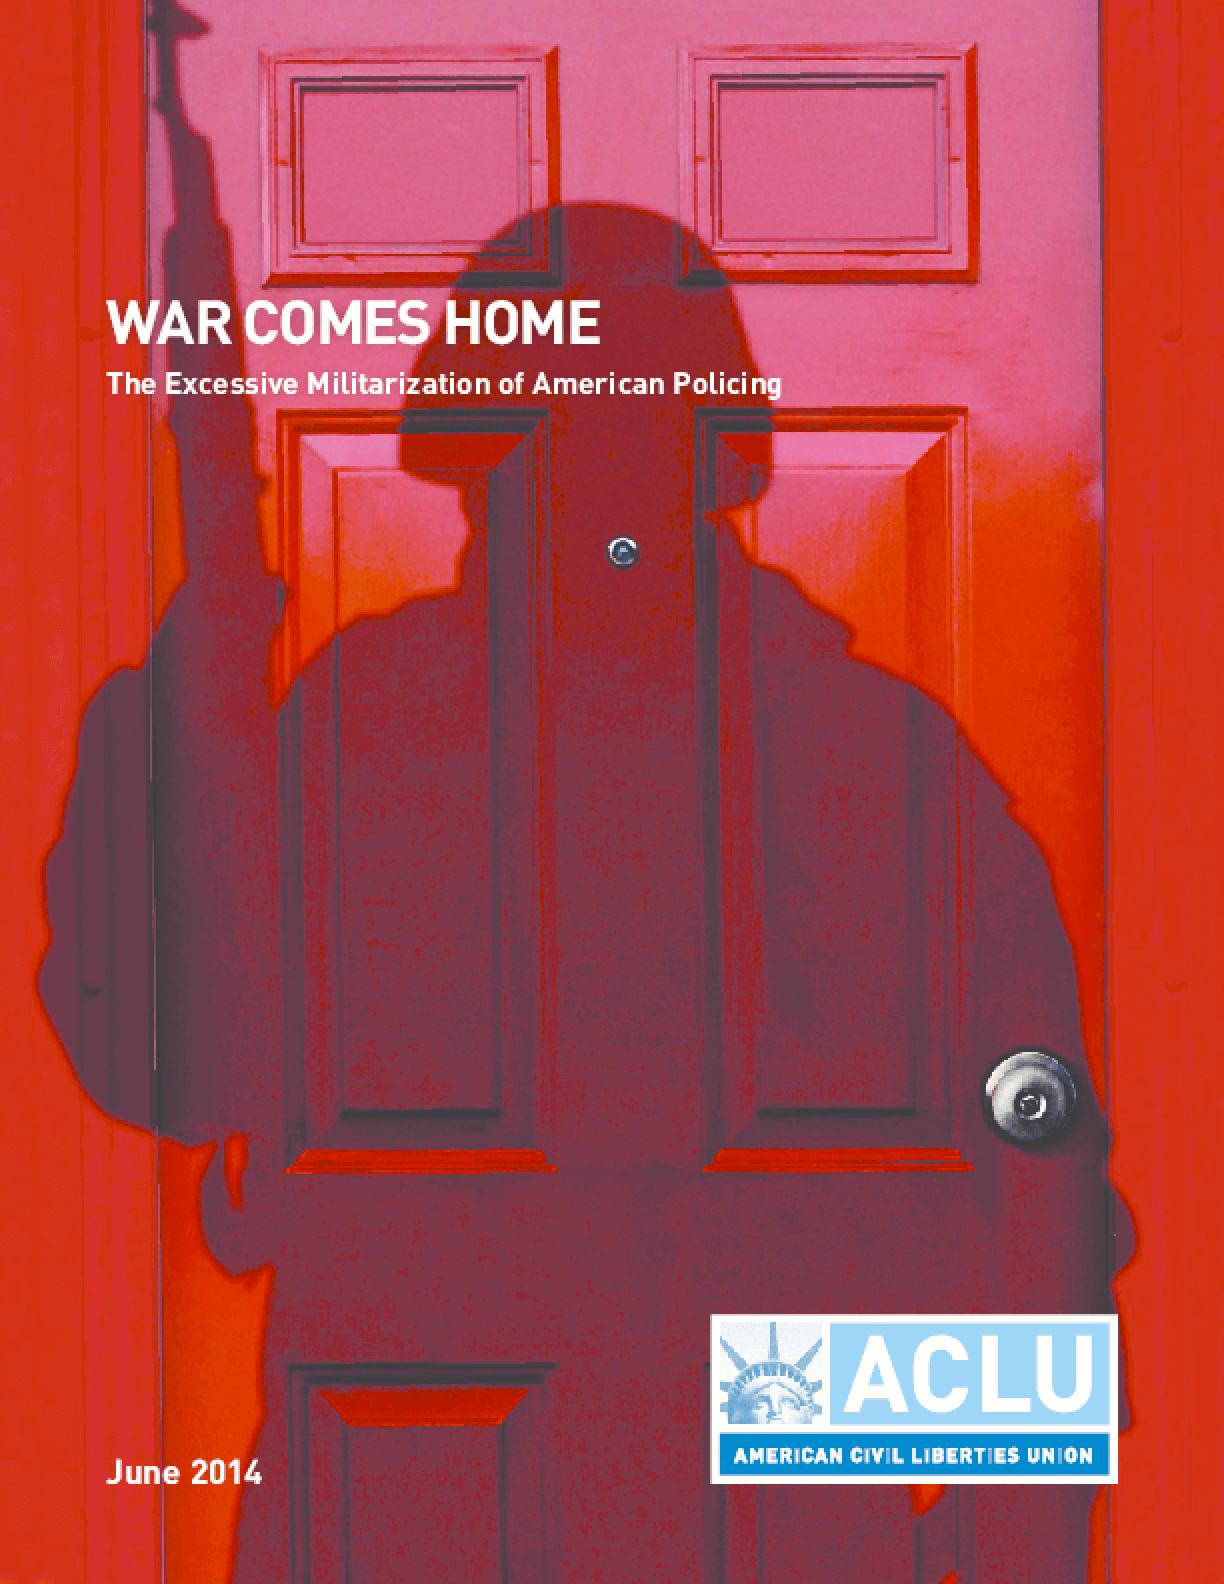 War Comes Home: The Excessive Militarization of American Policing